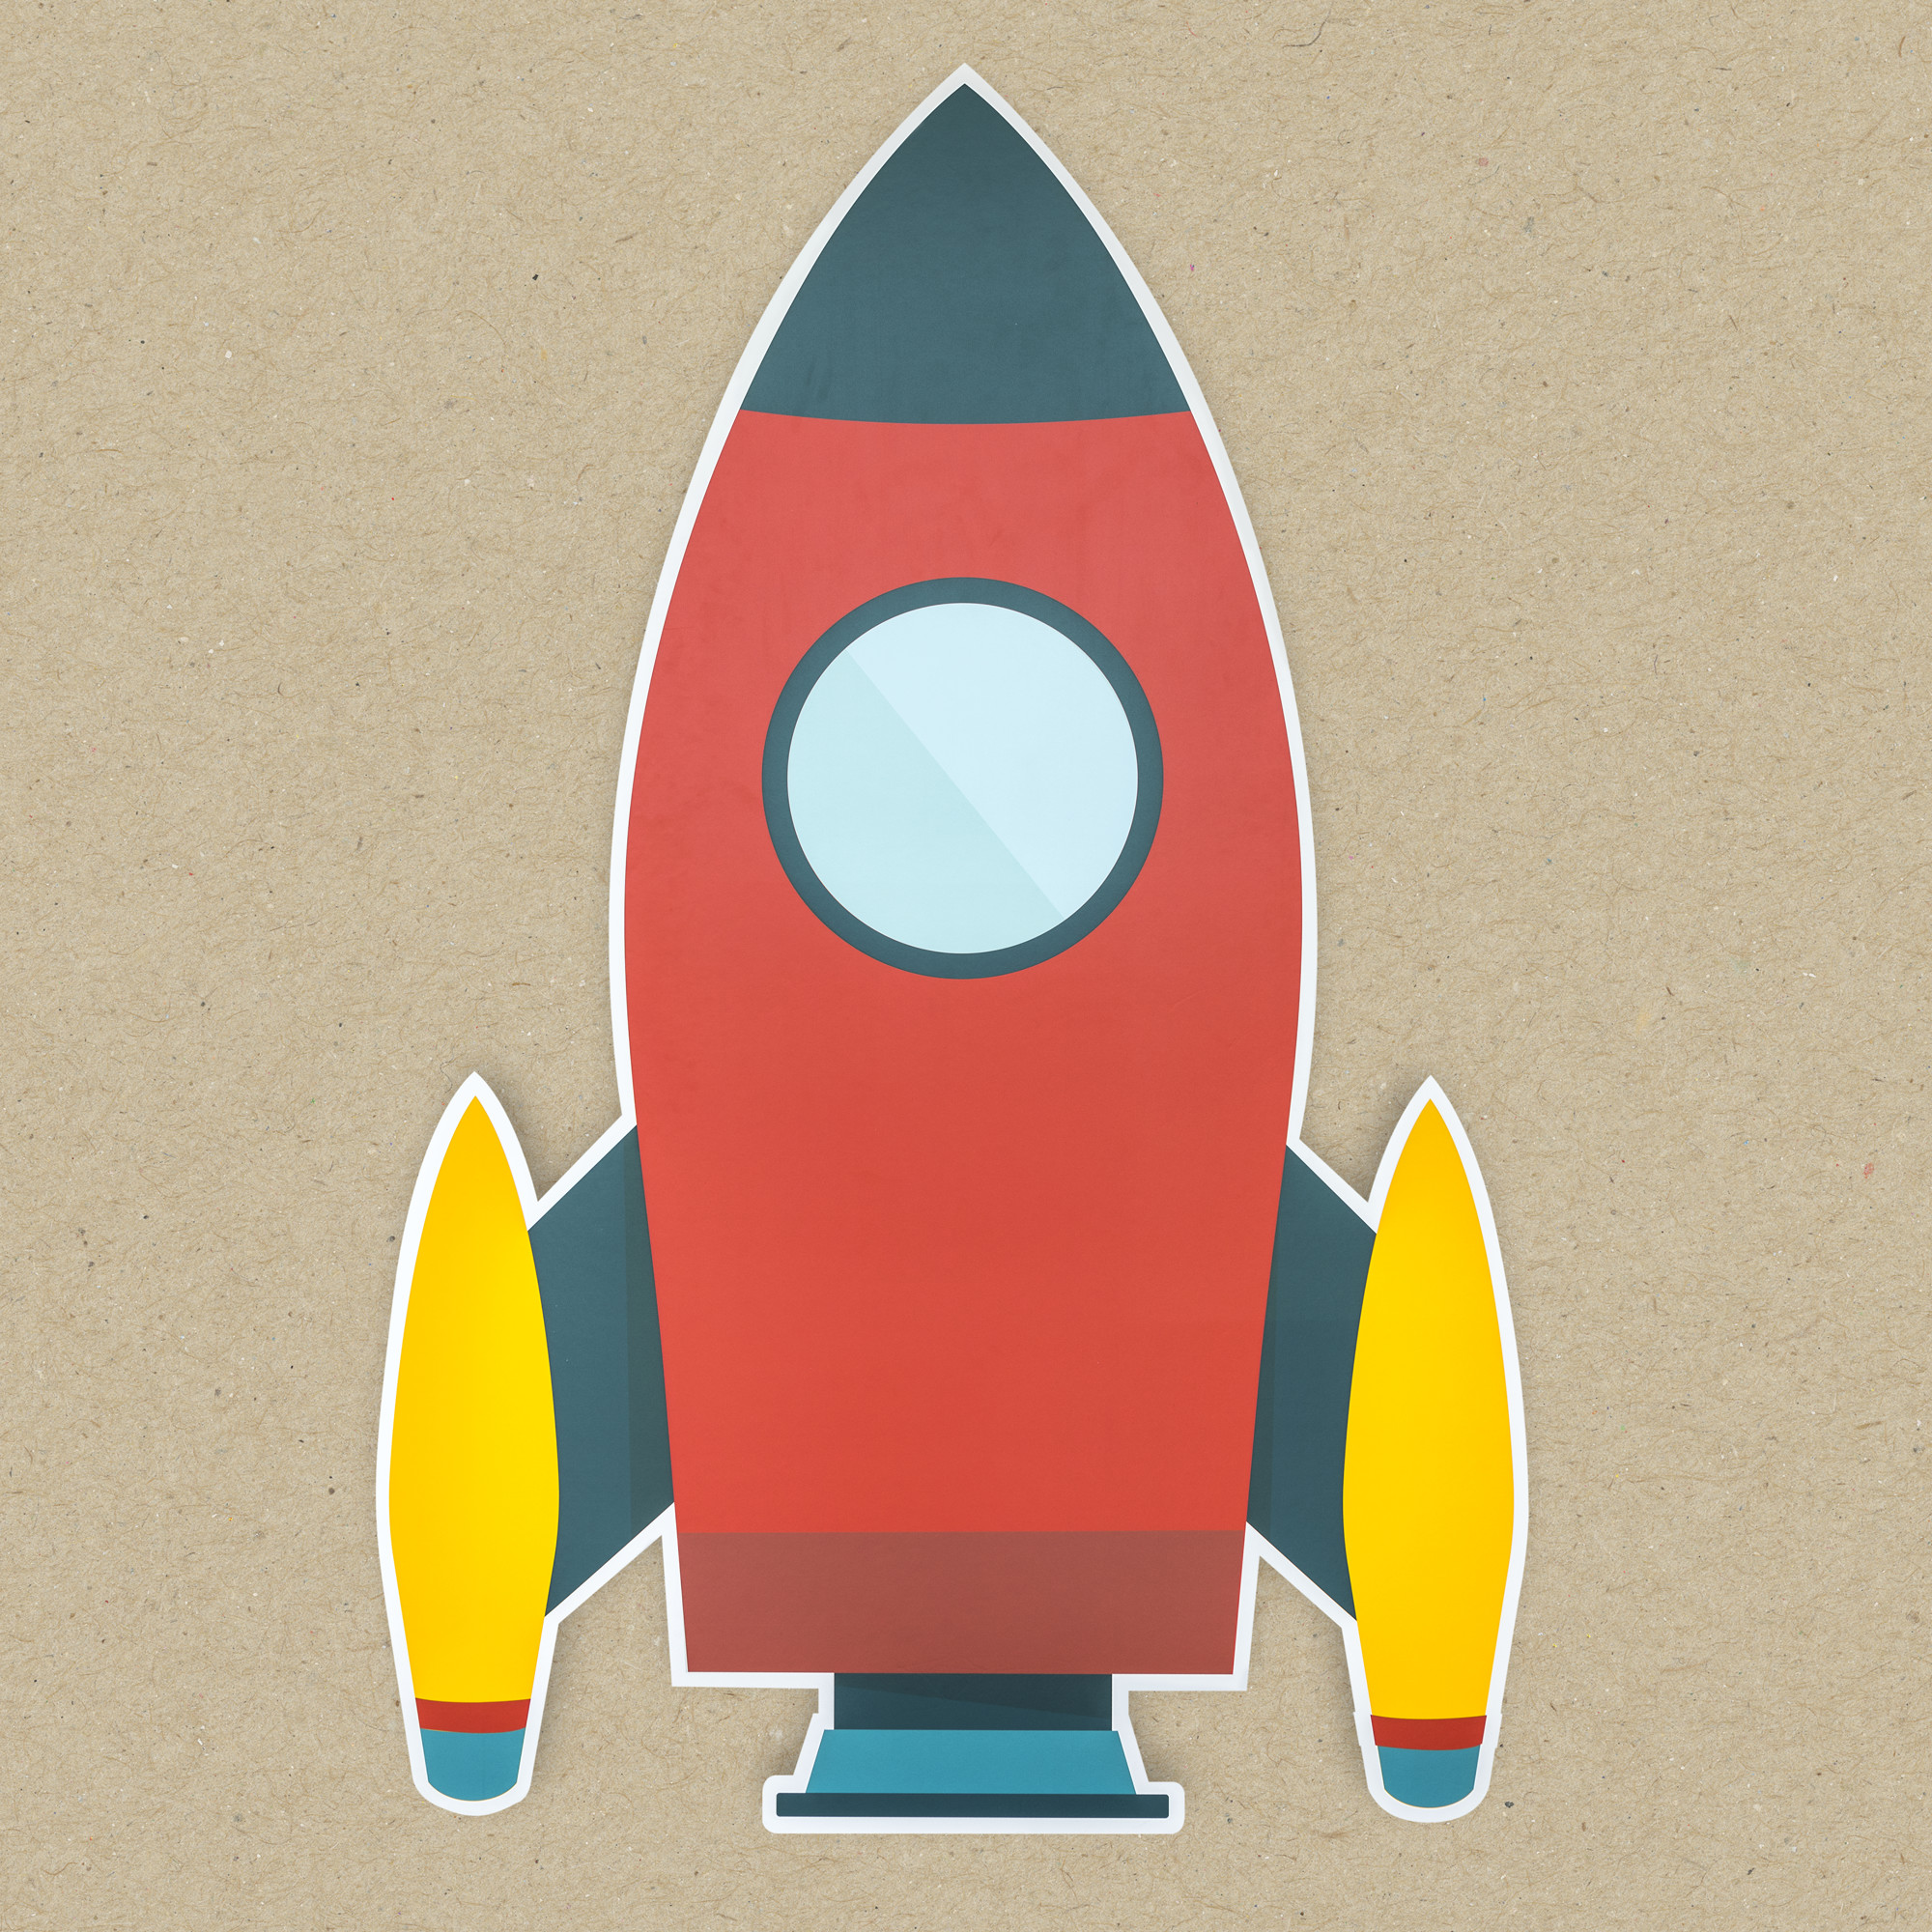 Launch rocket icon isolated